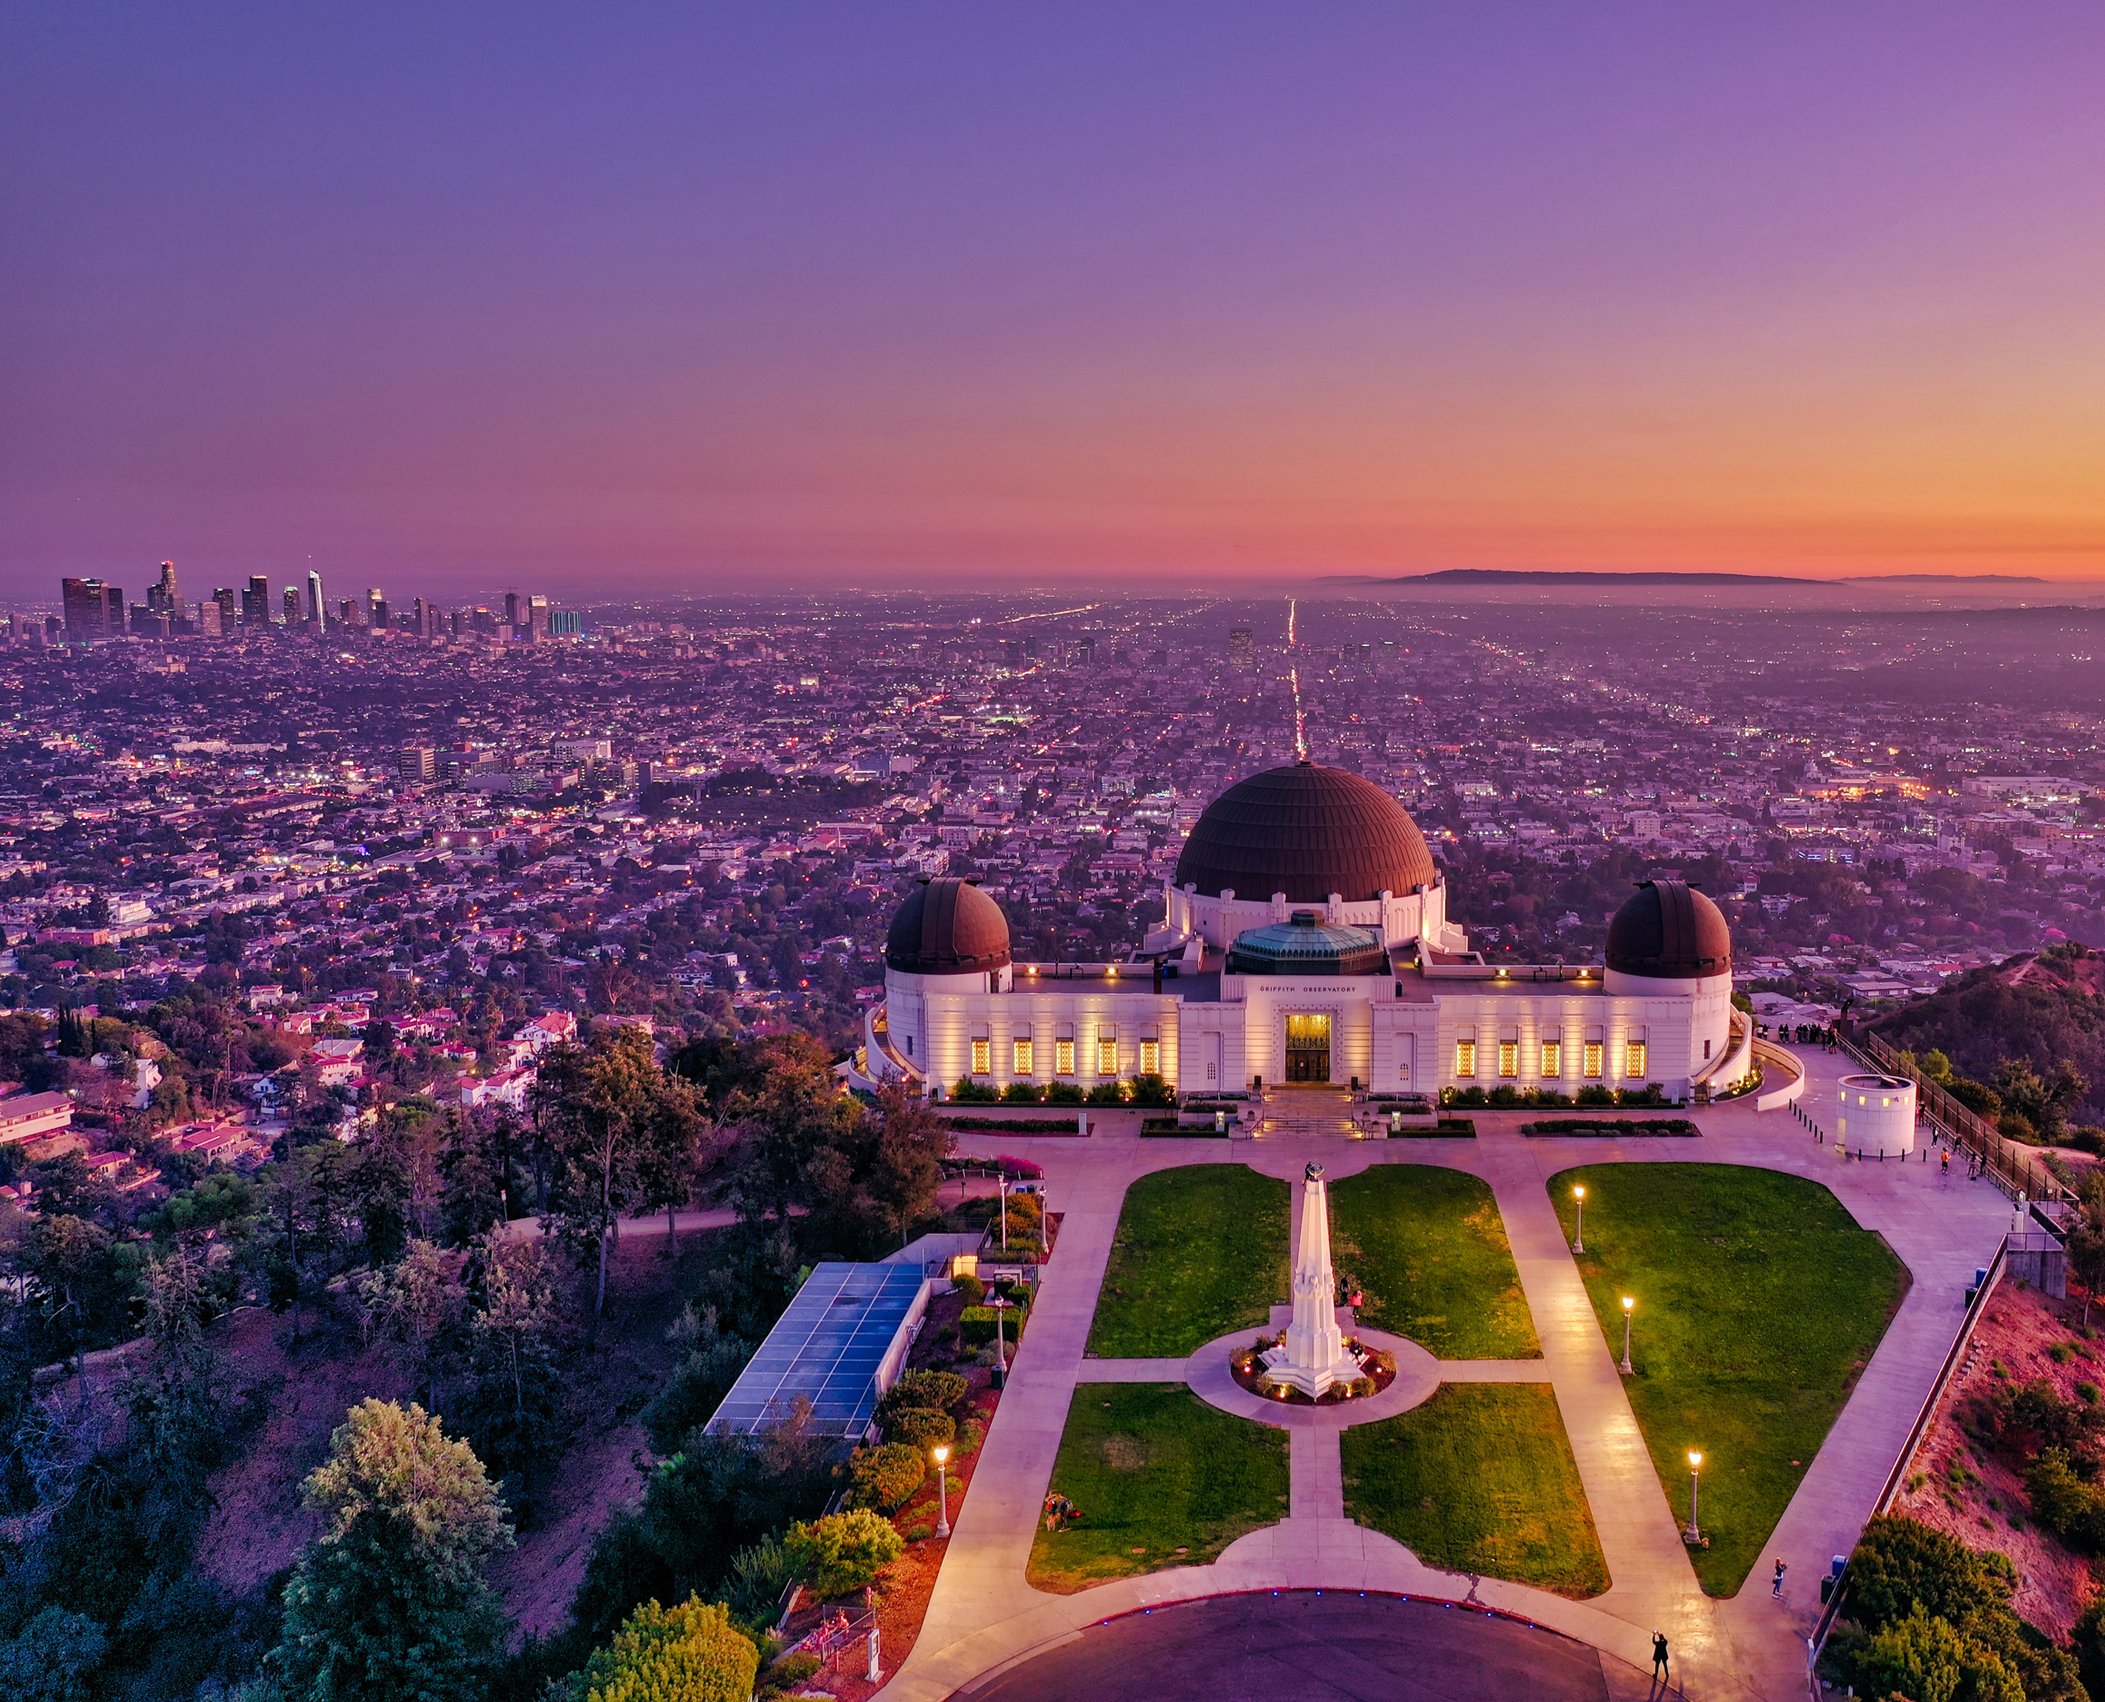 Griffith Observatory by night. Photo by Cameron Venti (https://unsplash.com/photos/PiqHSHYO3Uw).